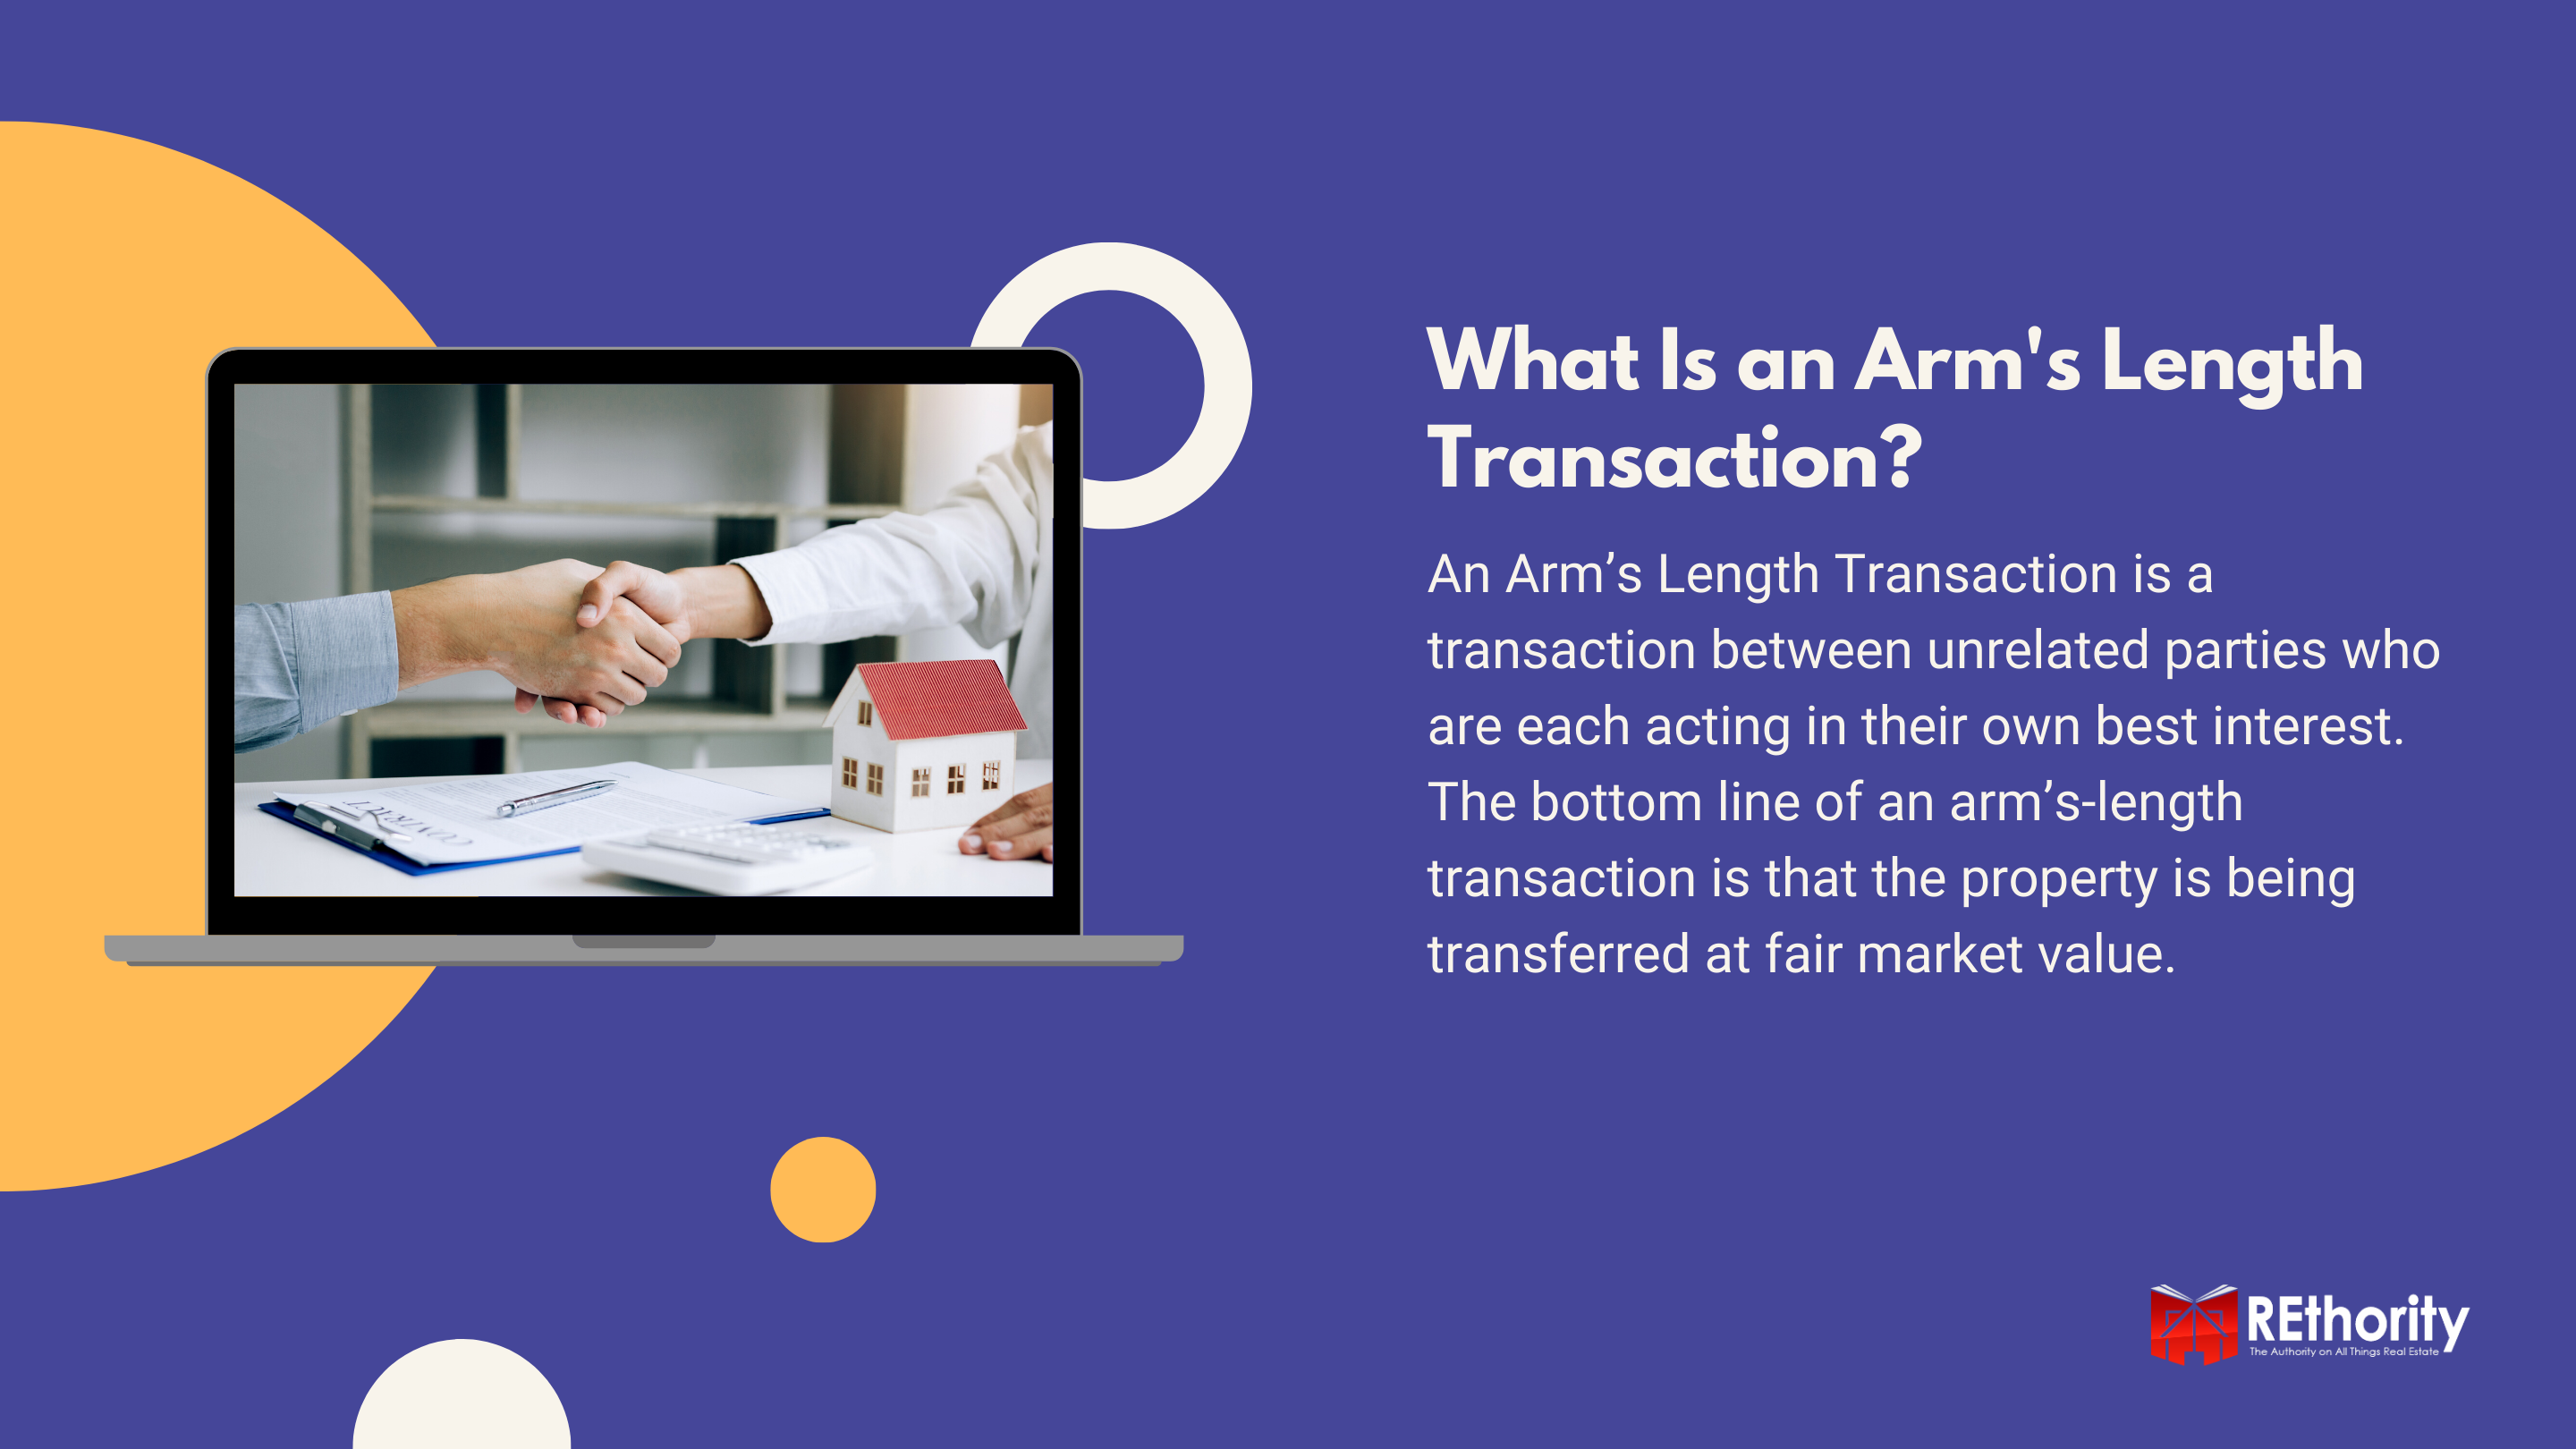 What Is an Arm's Length Transaction?